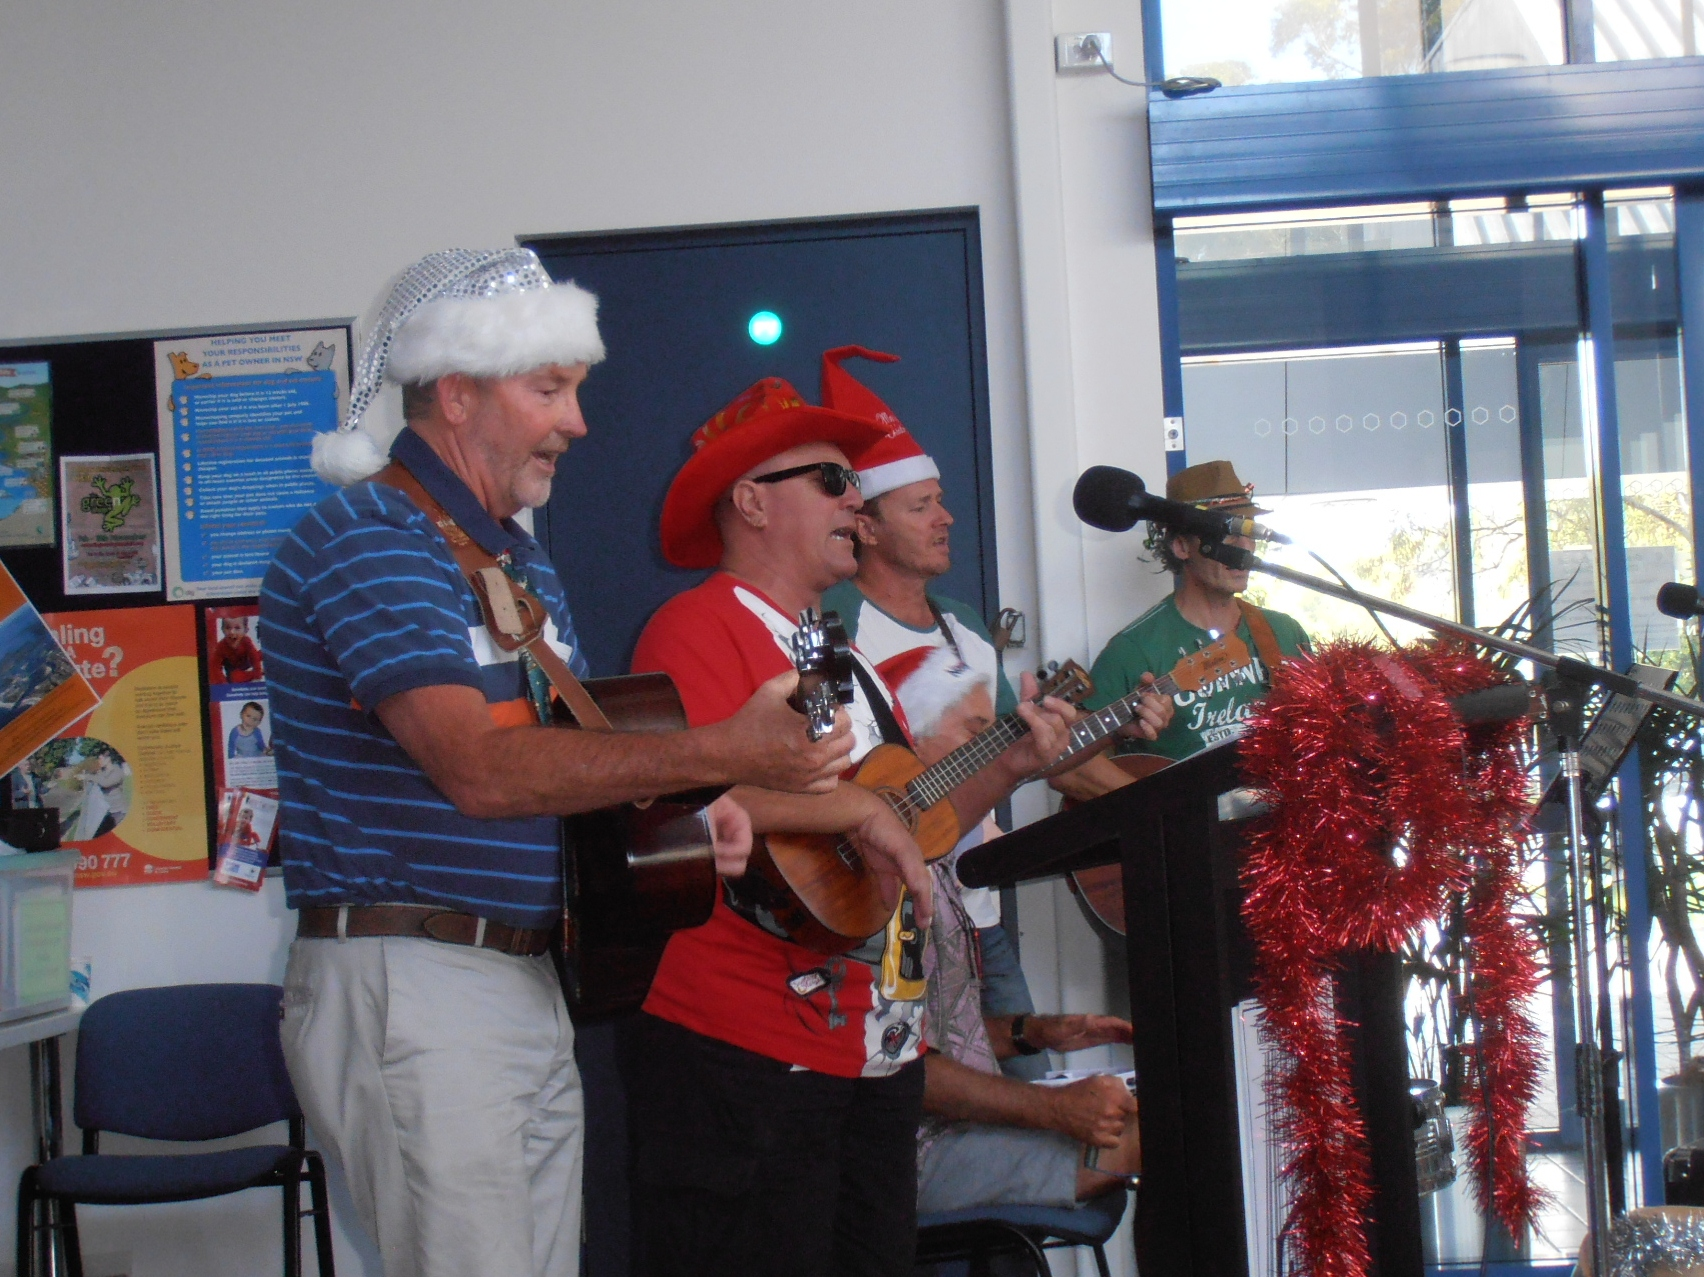 John Cavanagh, Bruno Puglisi, Marty Tooze and Steve Embry get their Christmas groove on.